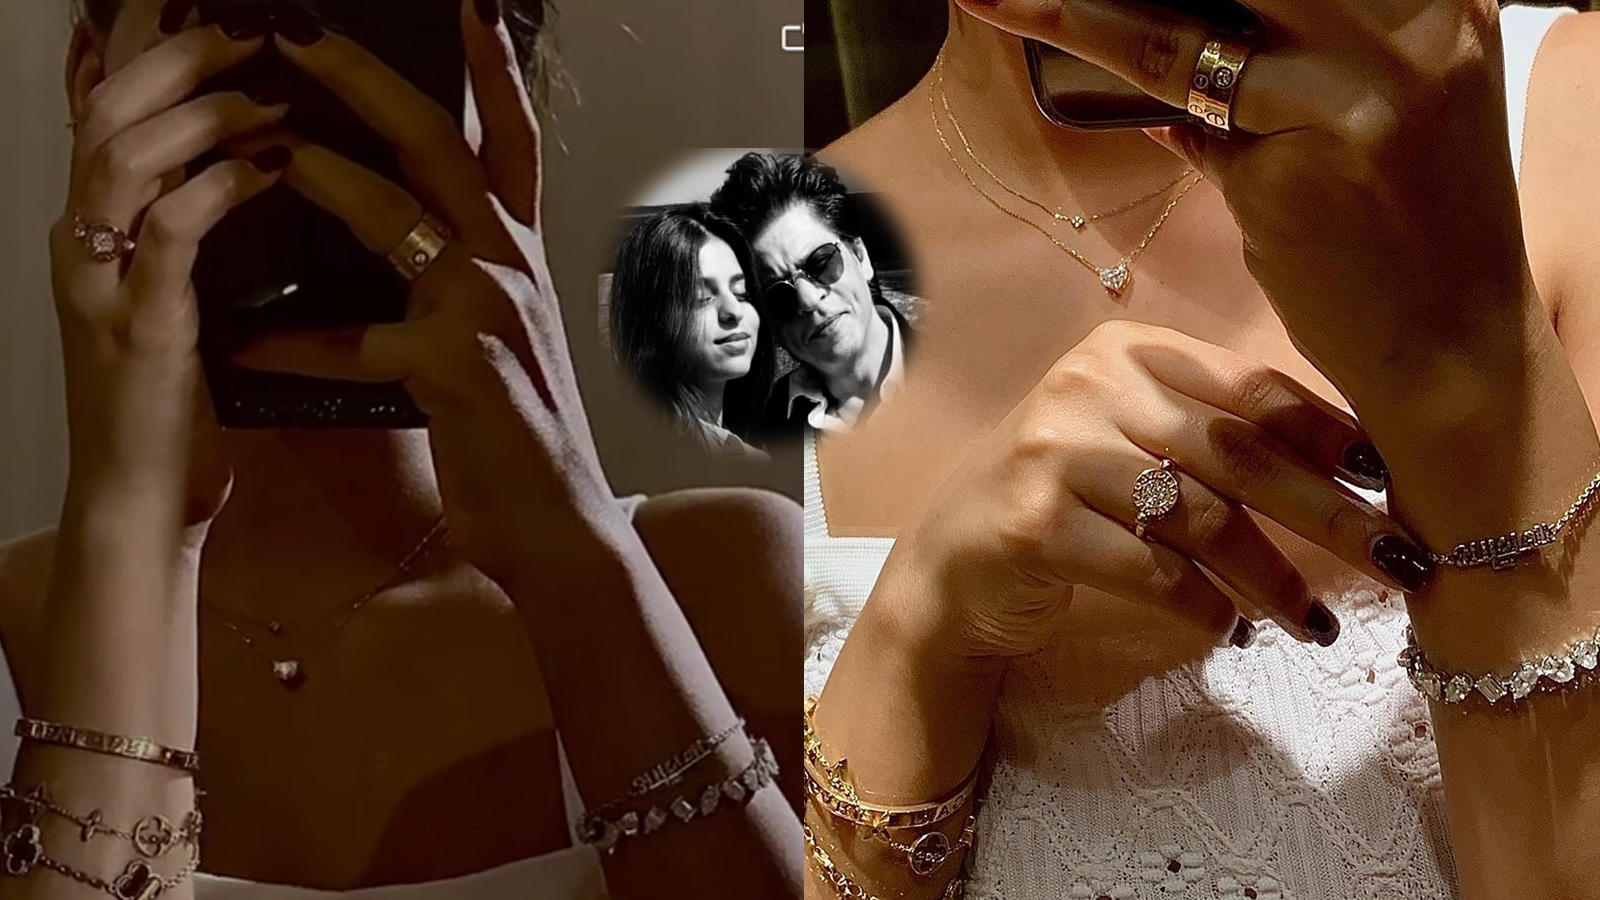 shah-rukh-khans-darling-daughter-suhana-khan-flaunts-her-diamond-rings-and-bracelet-navya-naveli-nanda-and-shanaya-kapoor-compliment-her